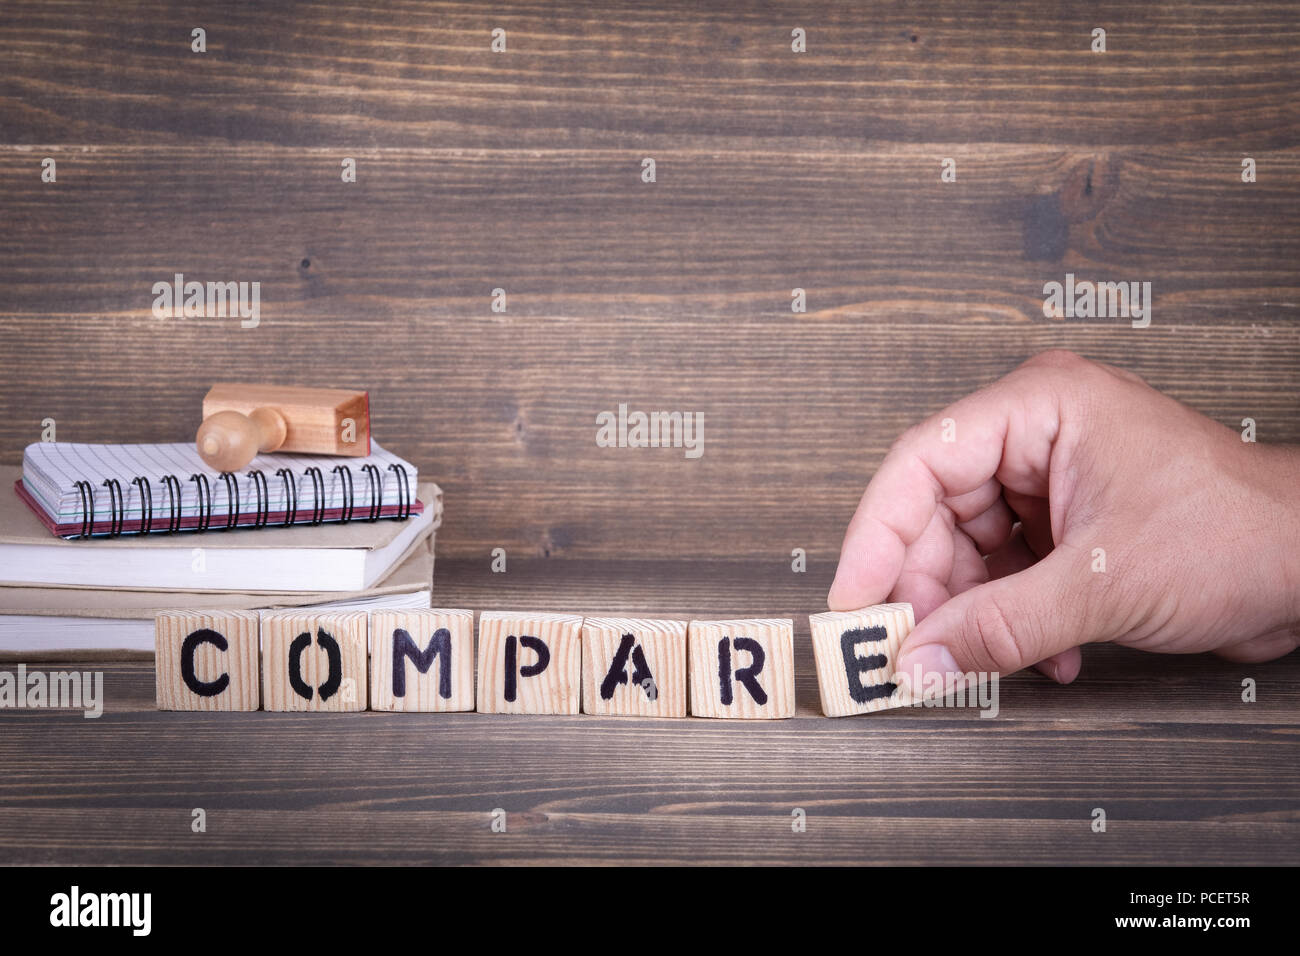 compare. wooden letters on the office desk - Stock Image